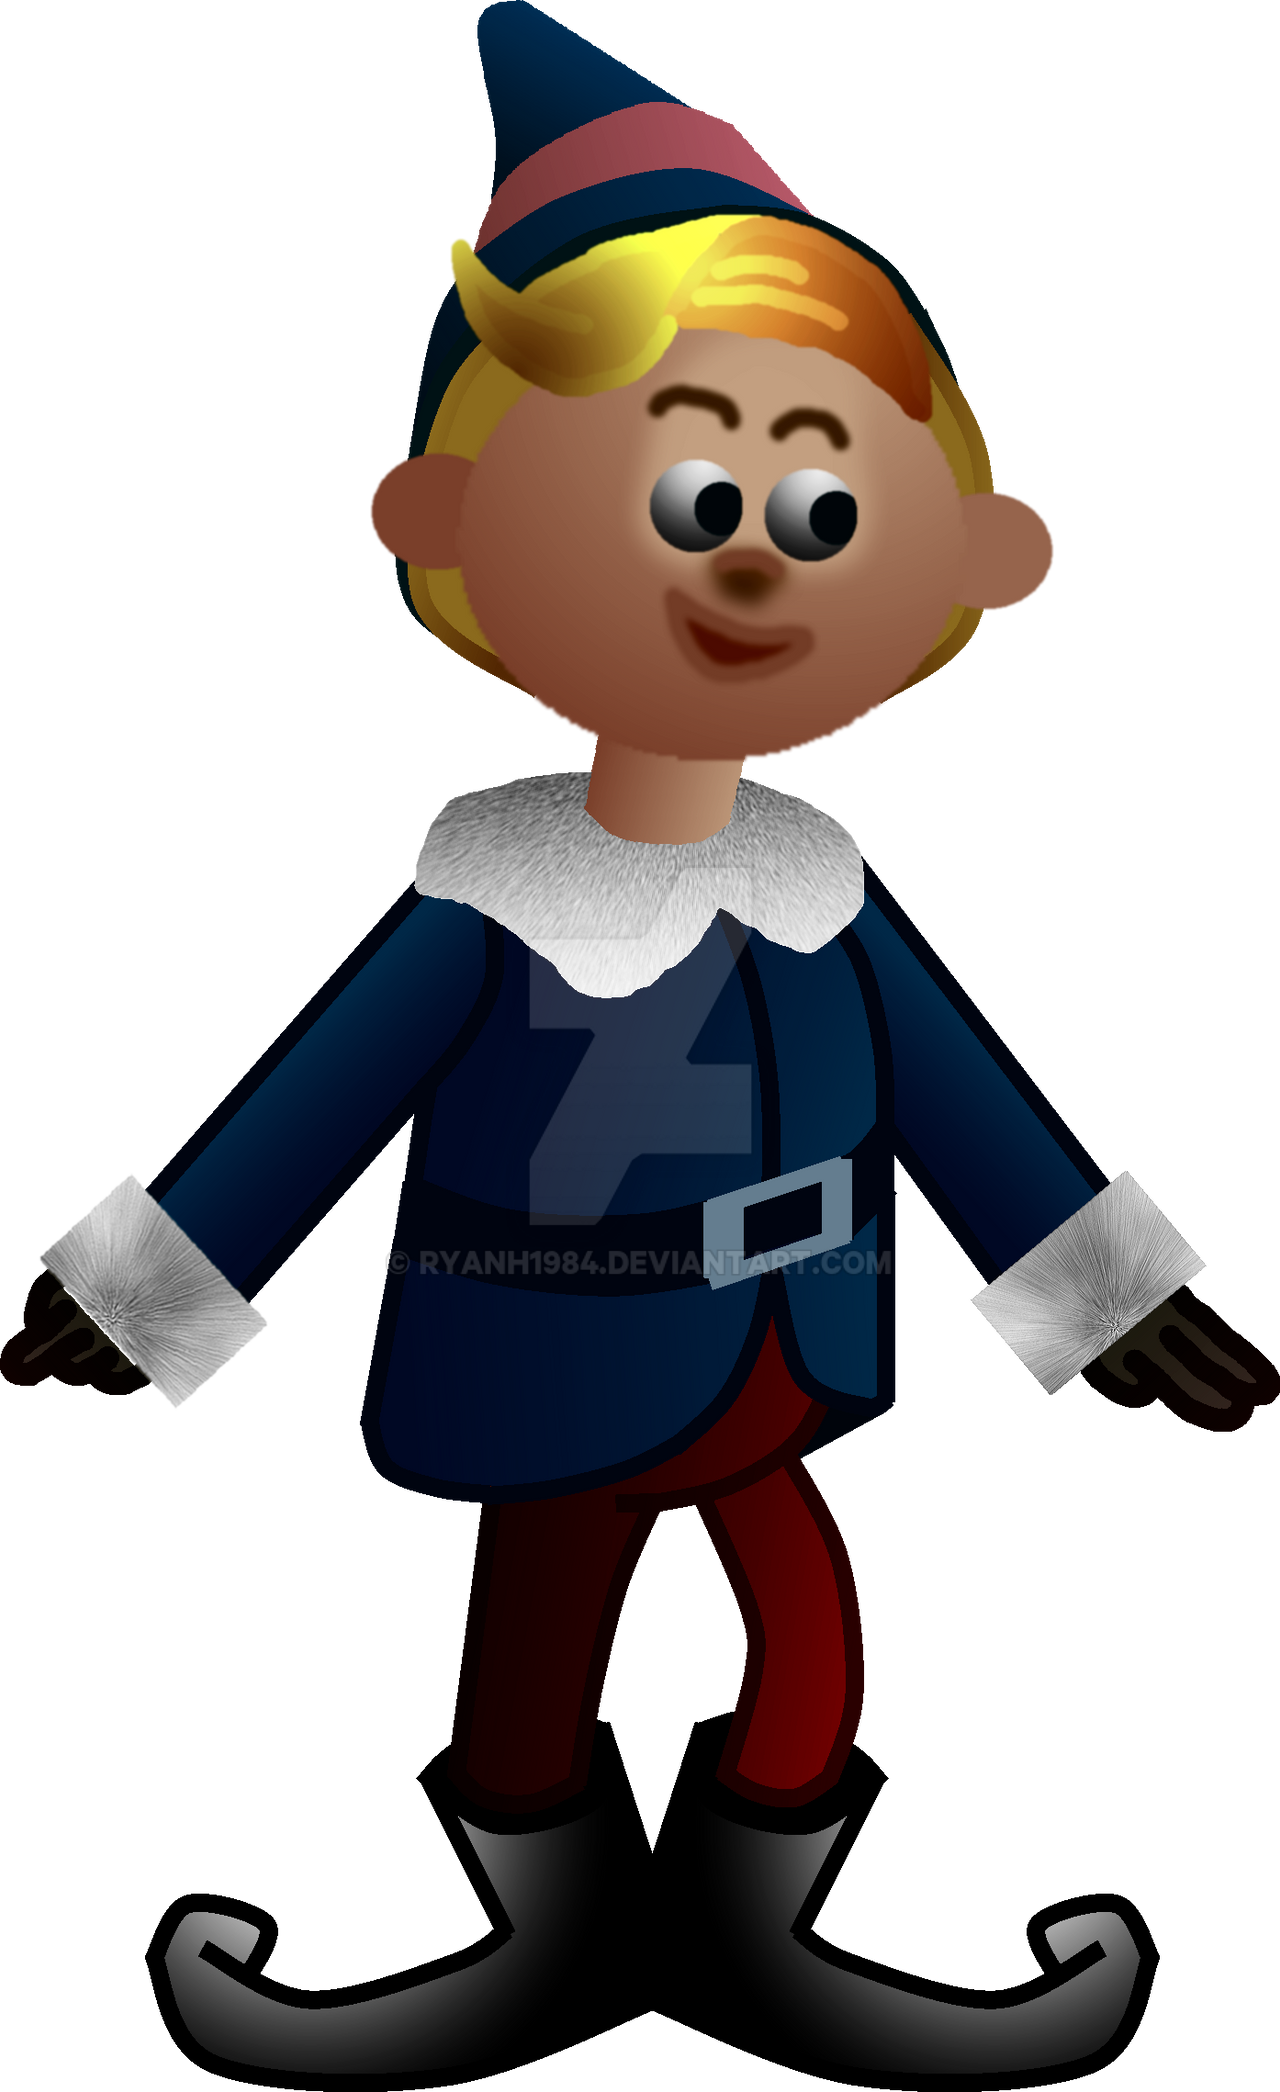 Rudolph The Red Nosed Reindeer 1964 >> Hermey from Rudolph The Red Nosed Reindeer (1964) by RyanH1984 on DeviantArt